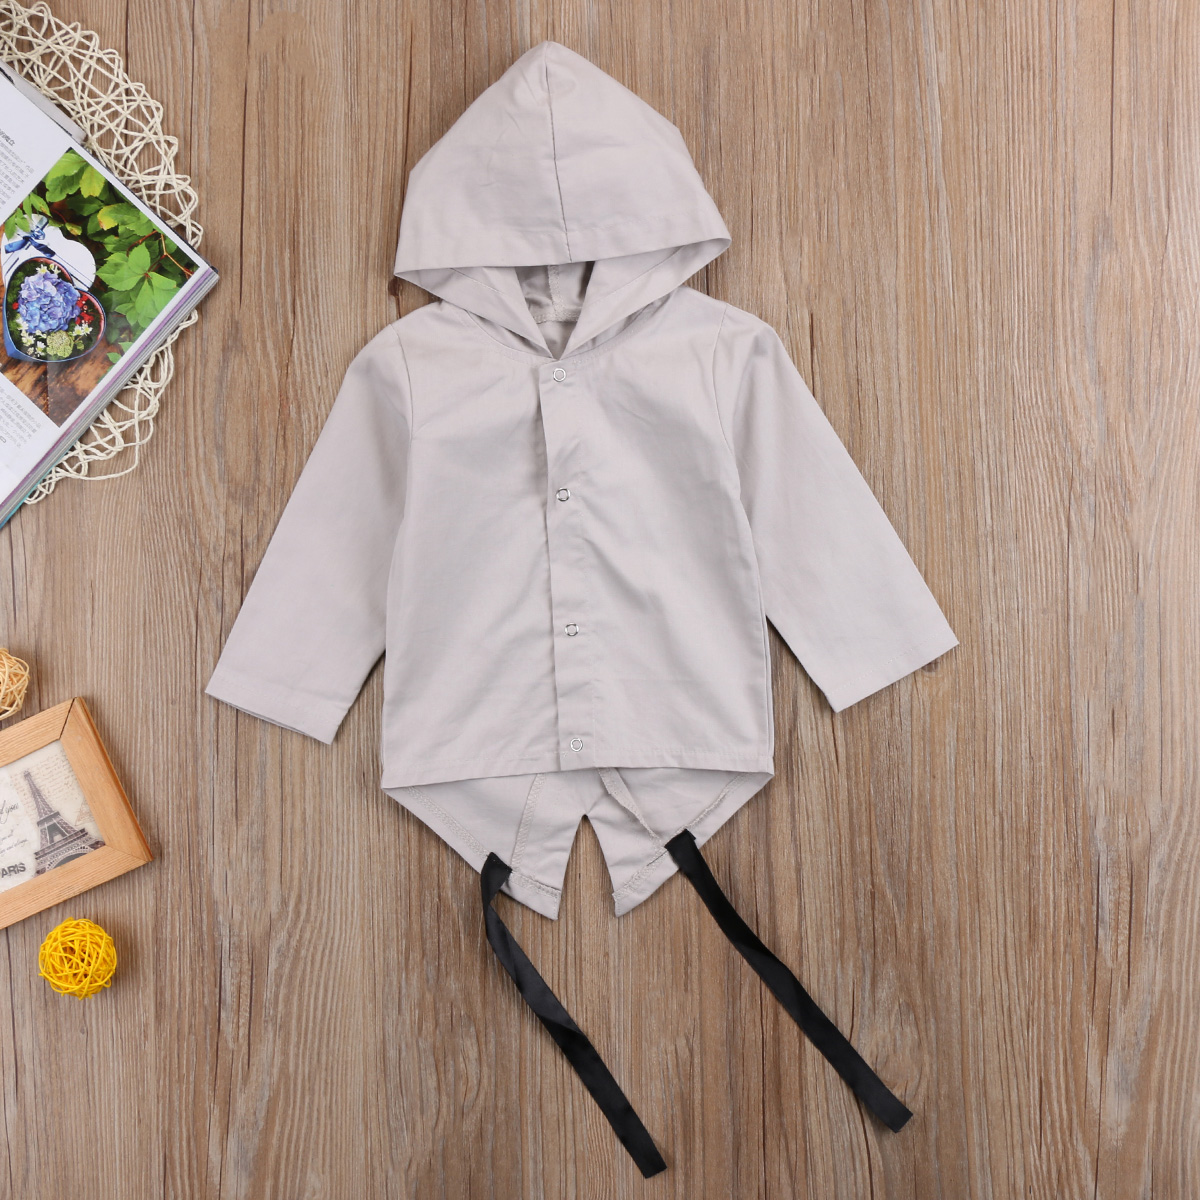 pudcoco Newest Arrivals Hot Infant Newborn Toddler Kids Baby Boy Outwear Coat Autumn Winter Lucky Child Jacket Clothes Age 0-24M одежда на маленьких мальчиков